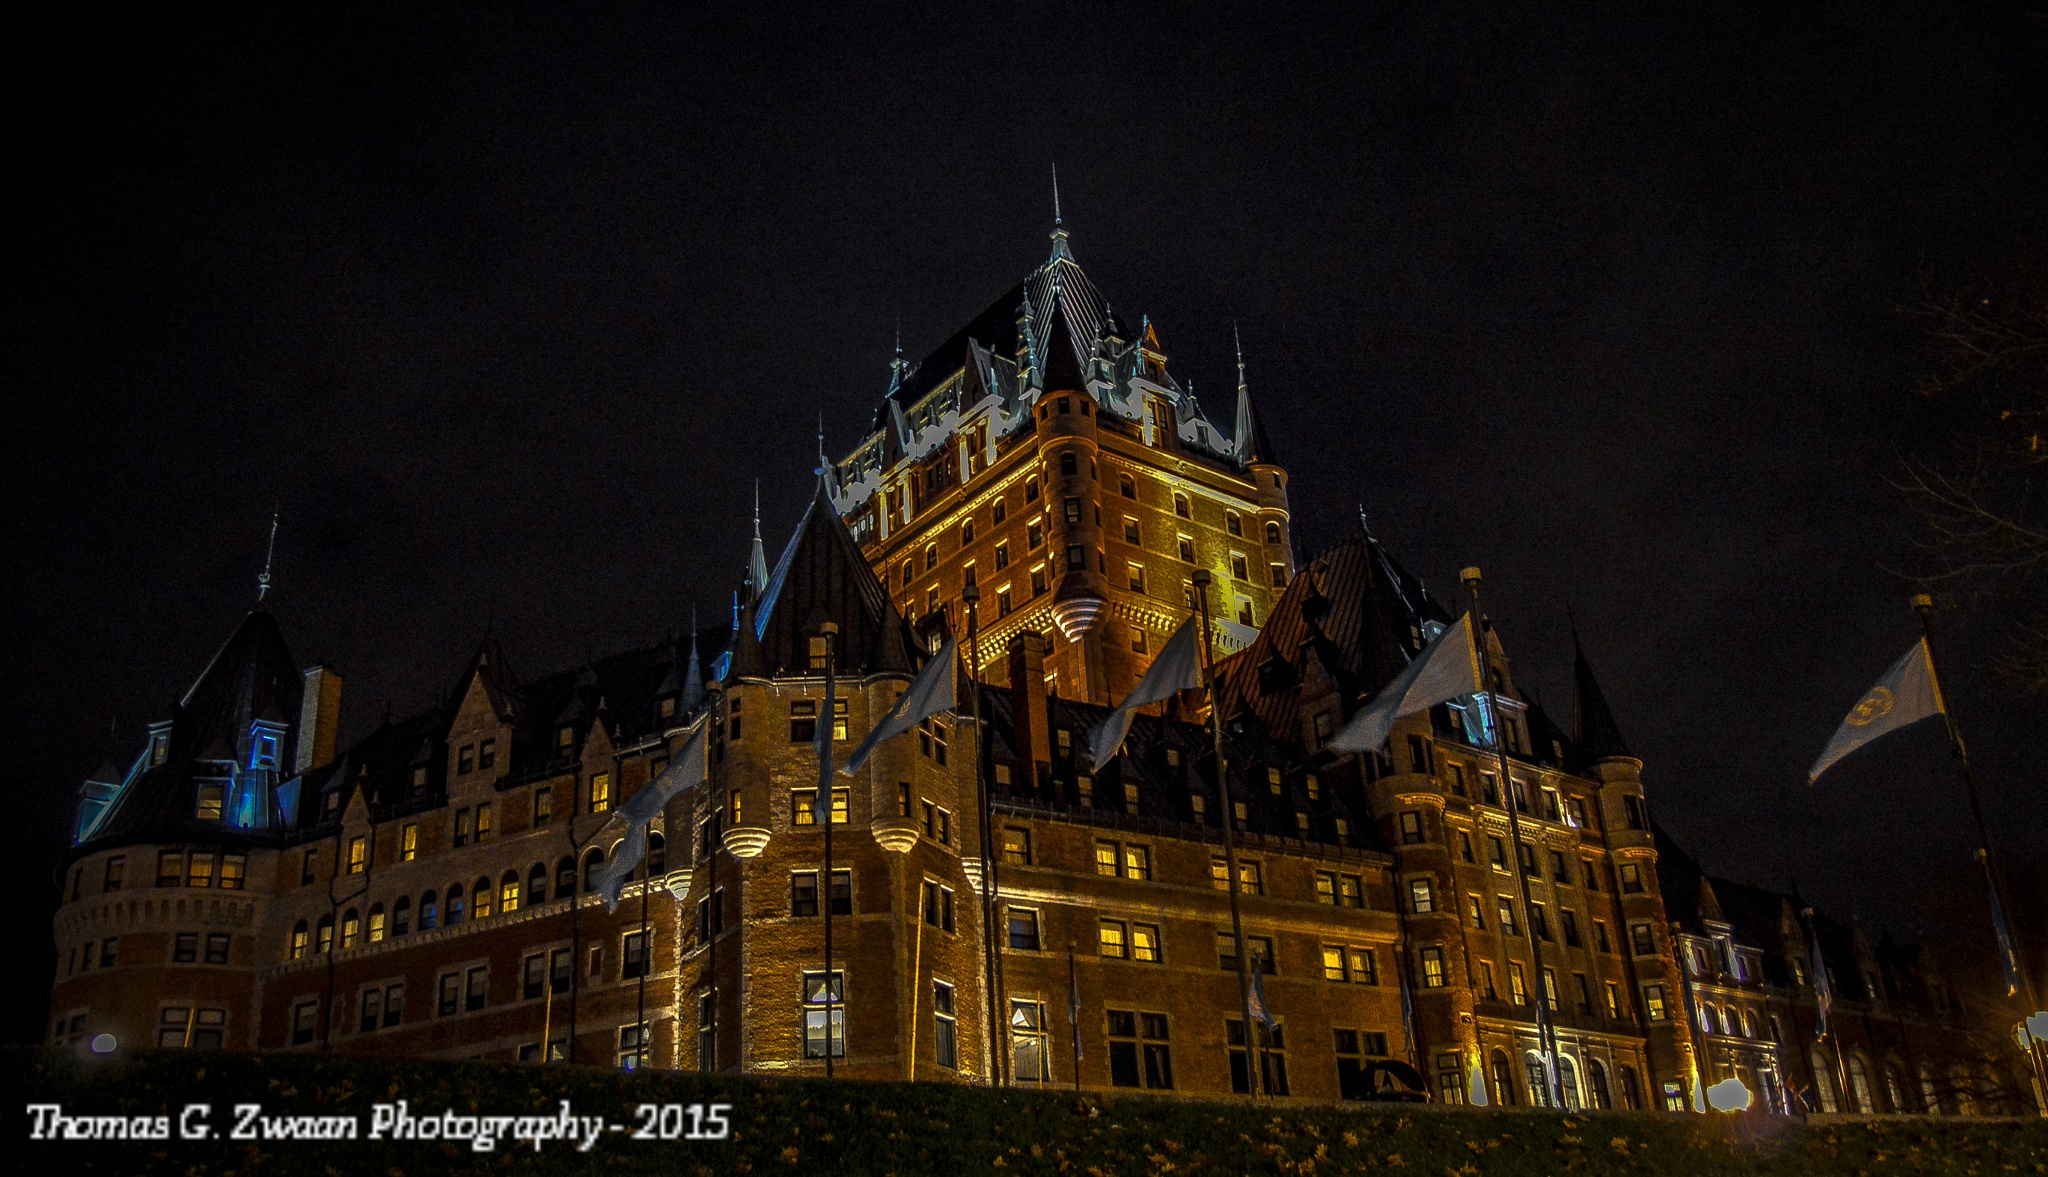 Le Chateau Frontenac by thomasgzwaanPhotography